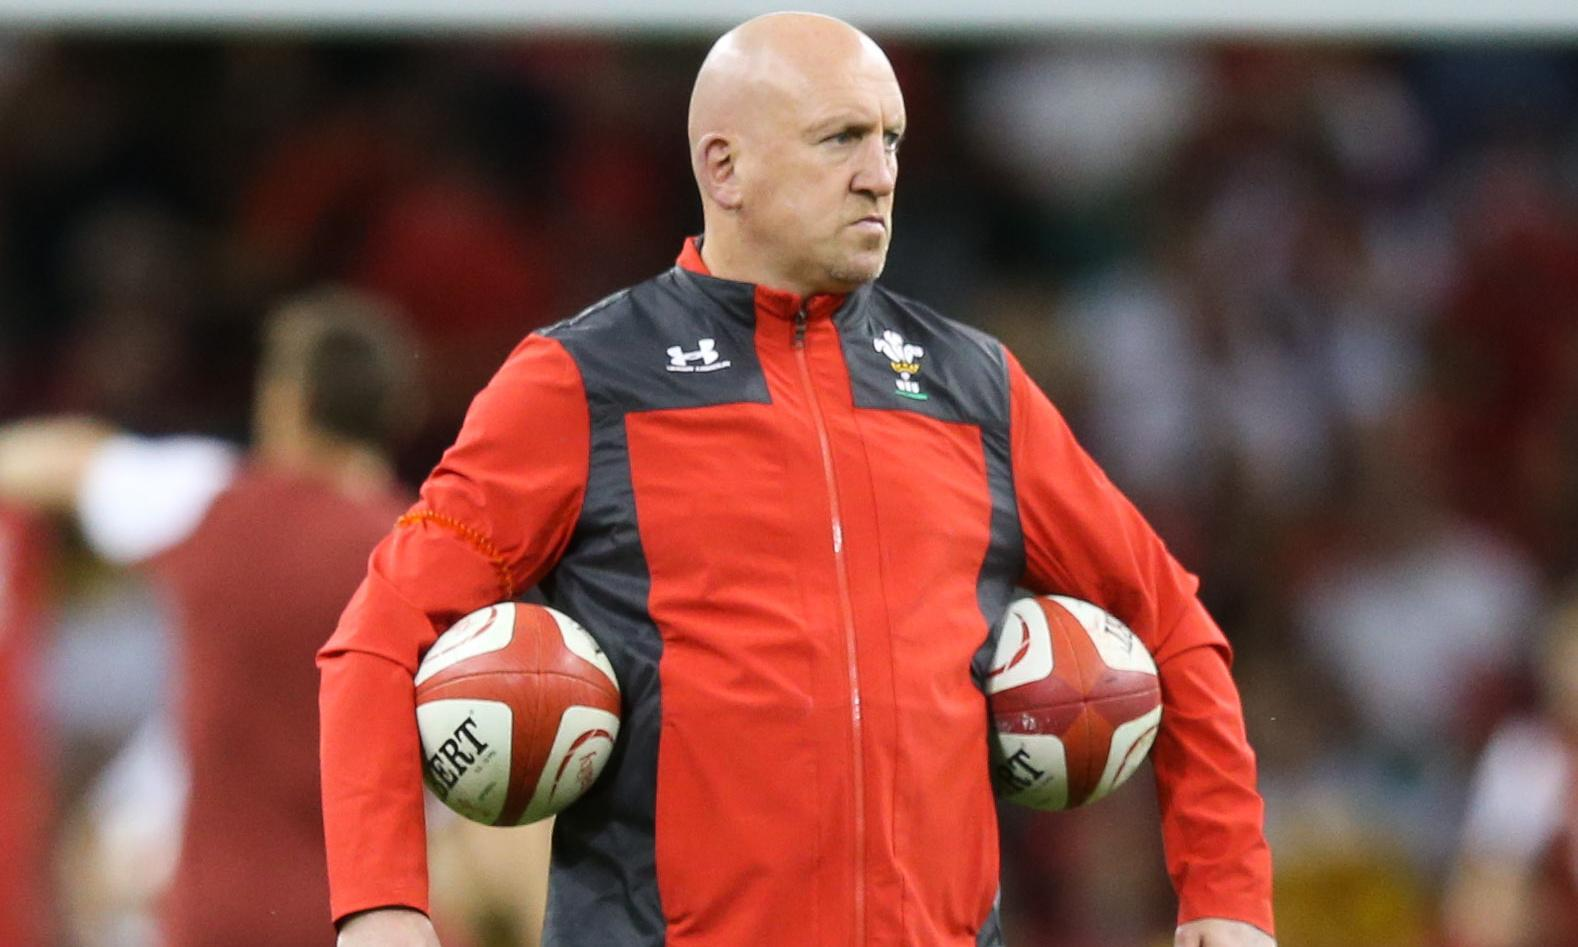 Shaun Edwards looks beyond Japan to World Cup success with France in 2023